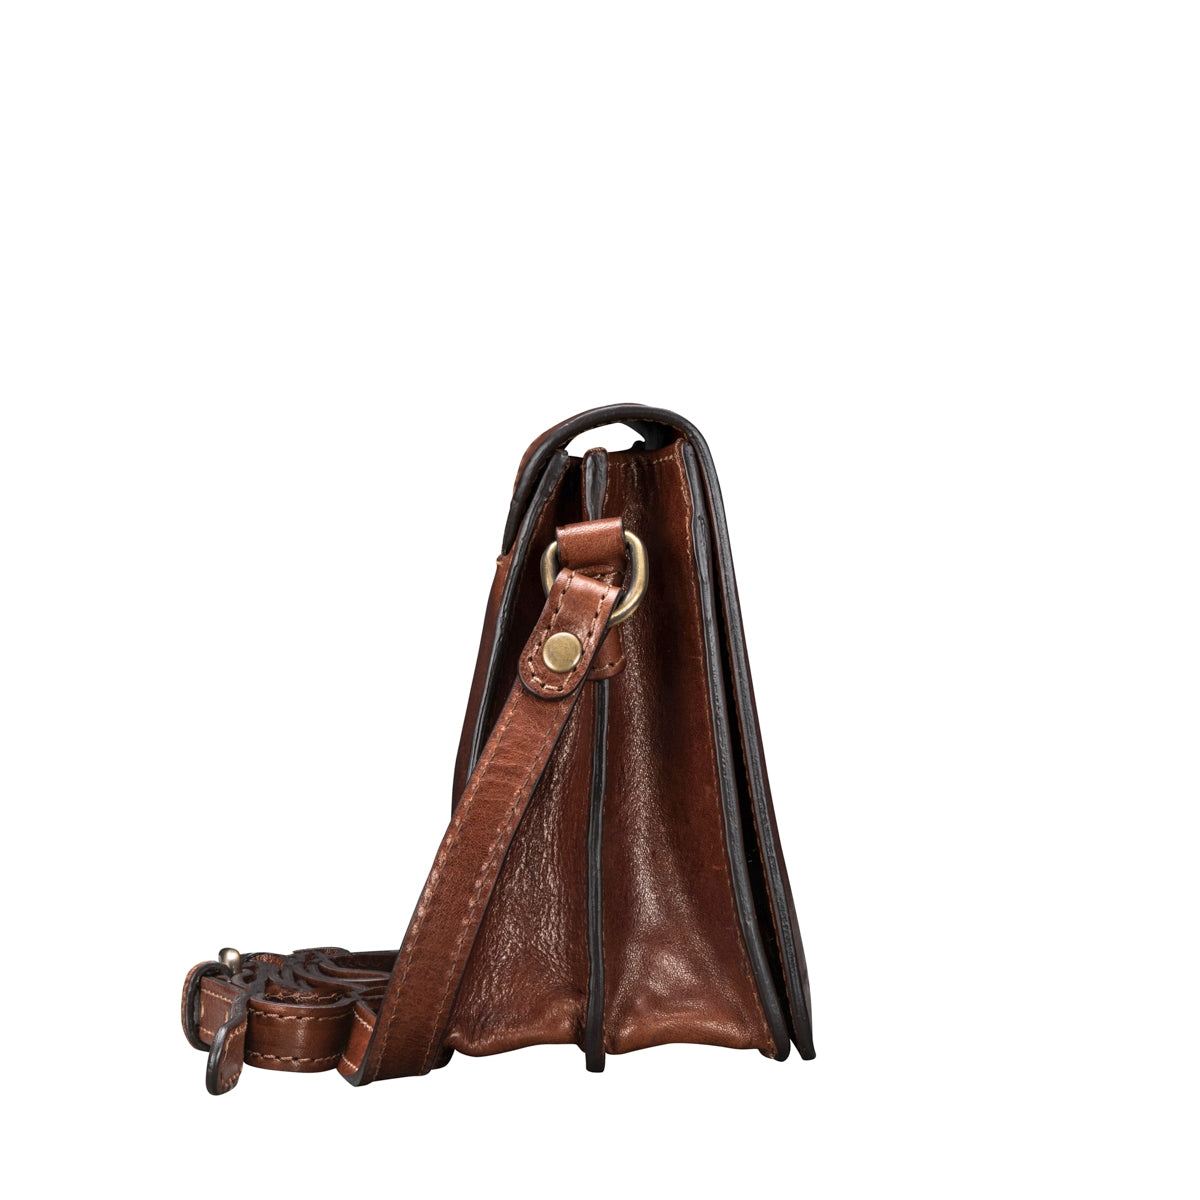 Image 3 of the 'Lucca' Small Chestnut Veg-Tanned Leather Handbag